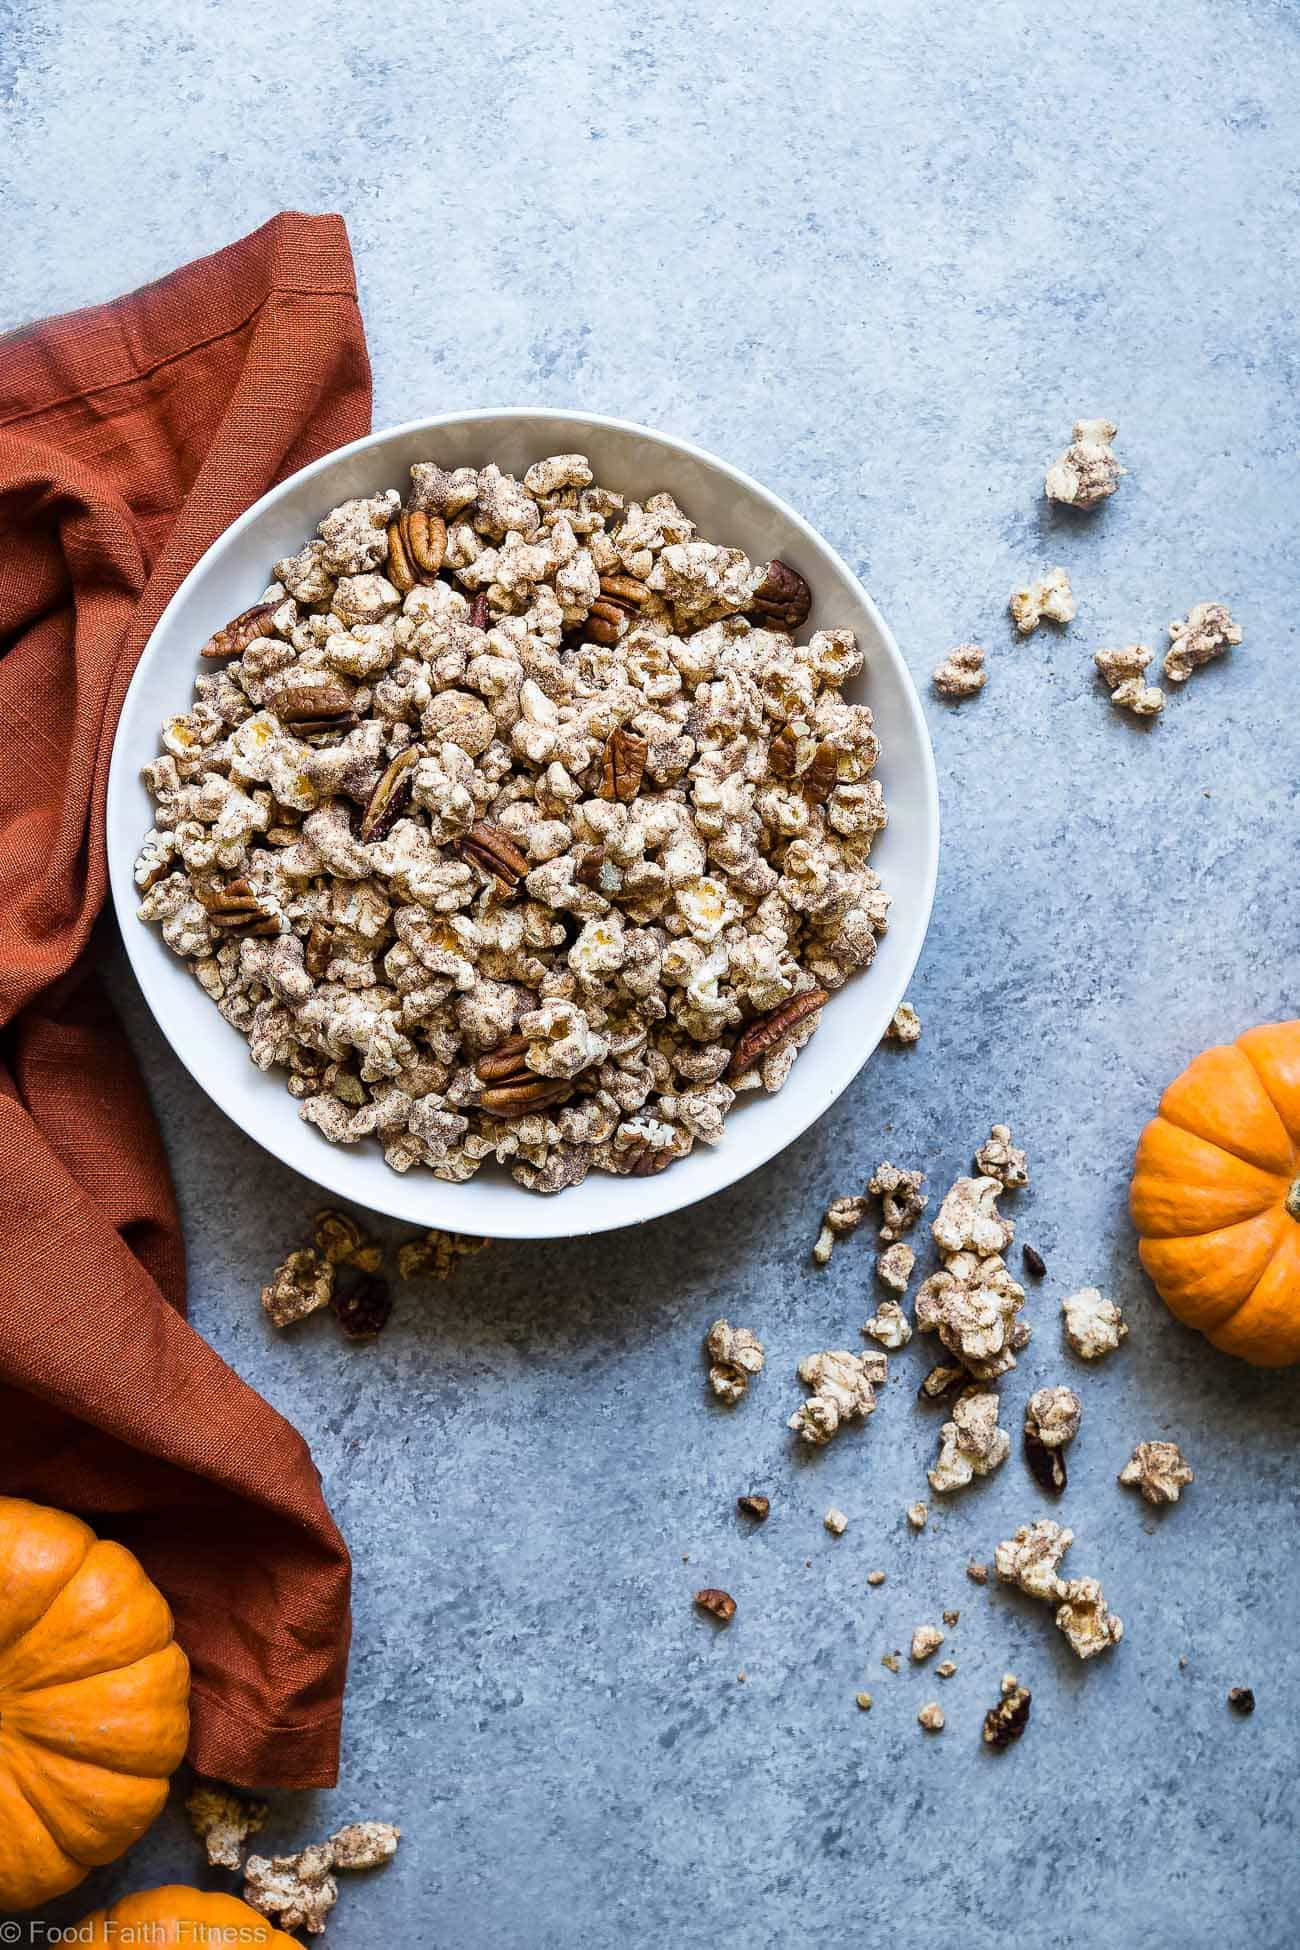 Vegan Pumpkin Spice Protein Popcorn -  This Pumpkin Flavored Homemade Microwave Popcorn is a healthy, dairy-free and protein packed fall treat! Perfect for kids and adults and so easy to make! | Foodfaithfitness.com | @FoodFaithFit